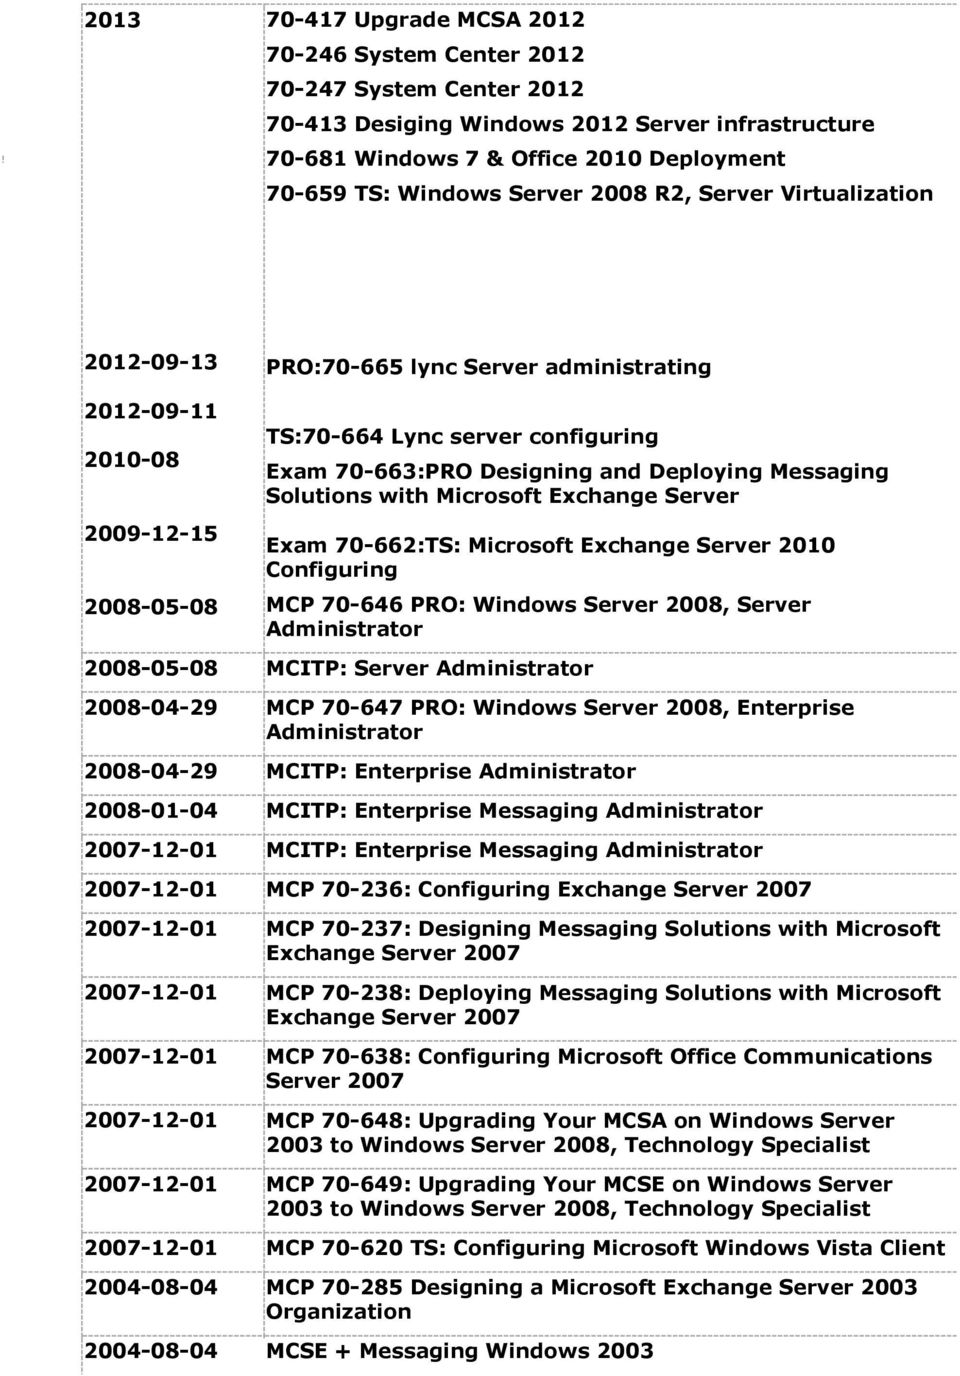 Deploying Messaging Solutions with Microsoft Exchange Server Exam 70-662:TS: Microsoft Exchange Server 2010 Configuring MCP 70-646 PRO: Windows Server 2008, Server Administrator 2008-05-08 MCITP: